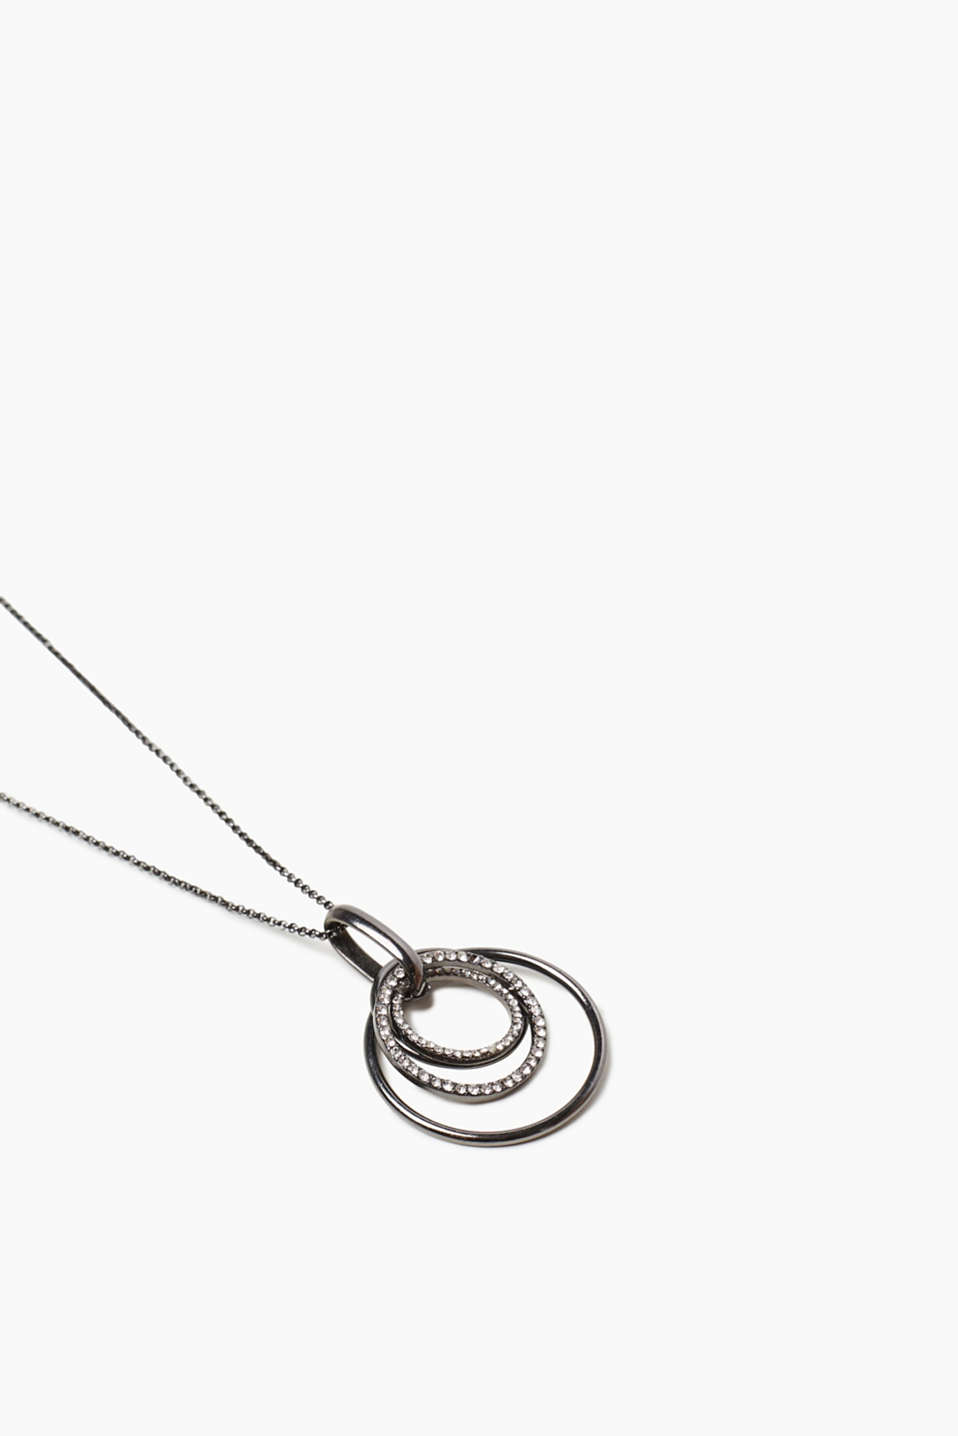 Long necklace with ring pendants